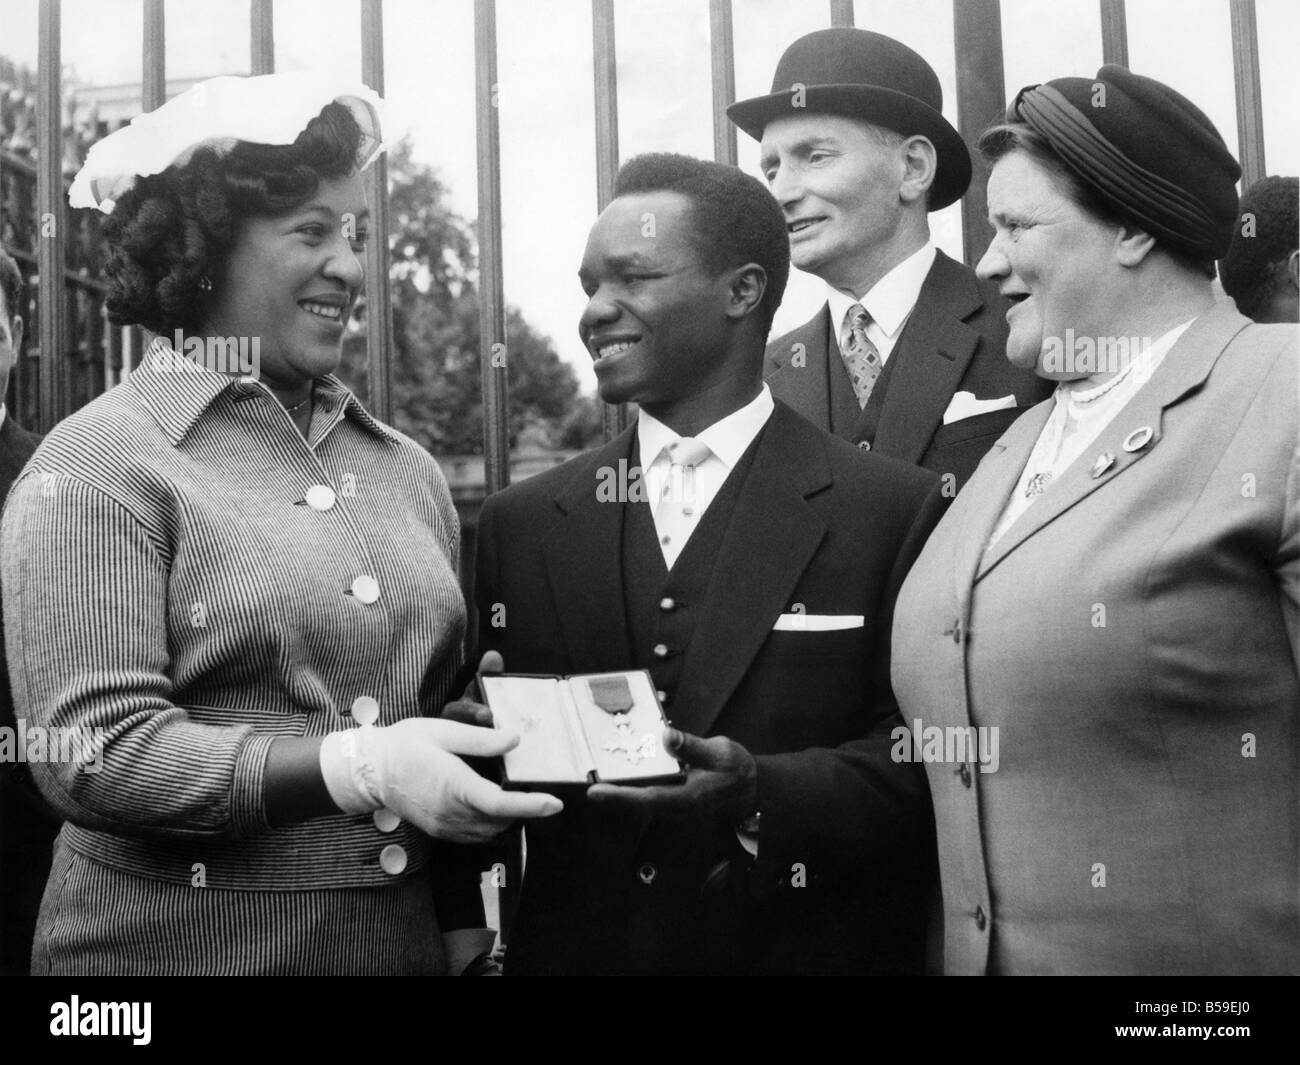 Nigerian boxer Hogan KId Bassey MBE outsise the Palace with wife and Bessie Braddock after being warded his medal - Stock Image